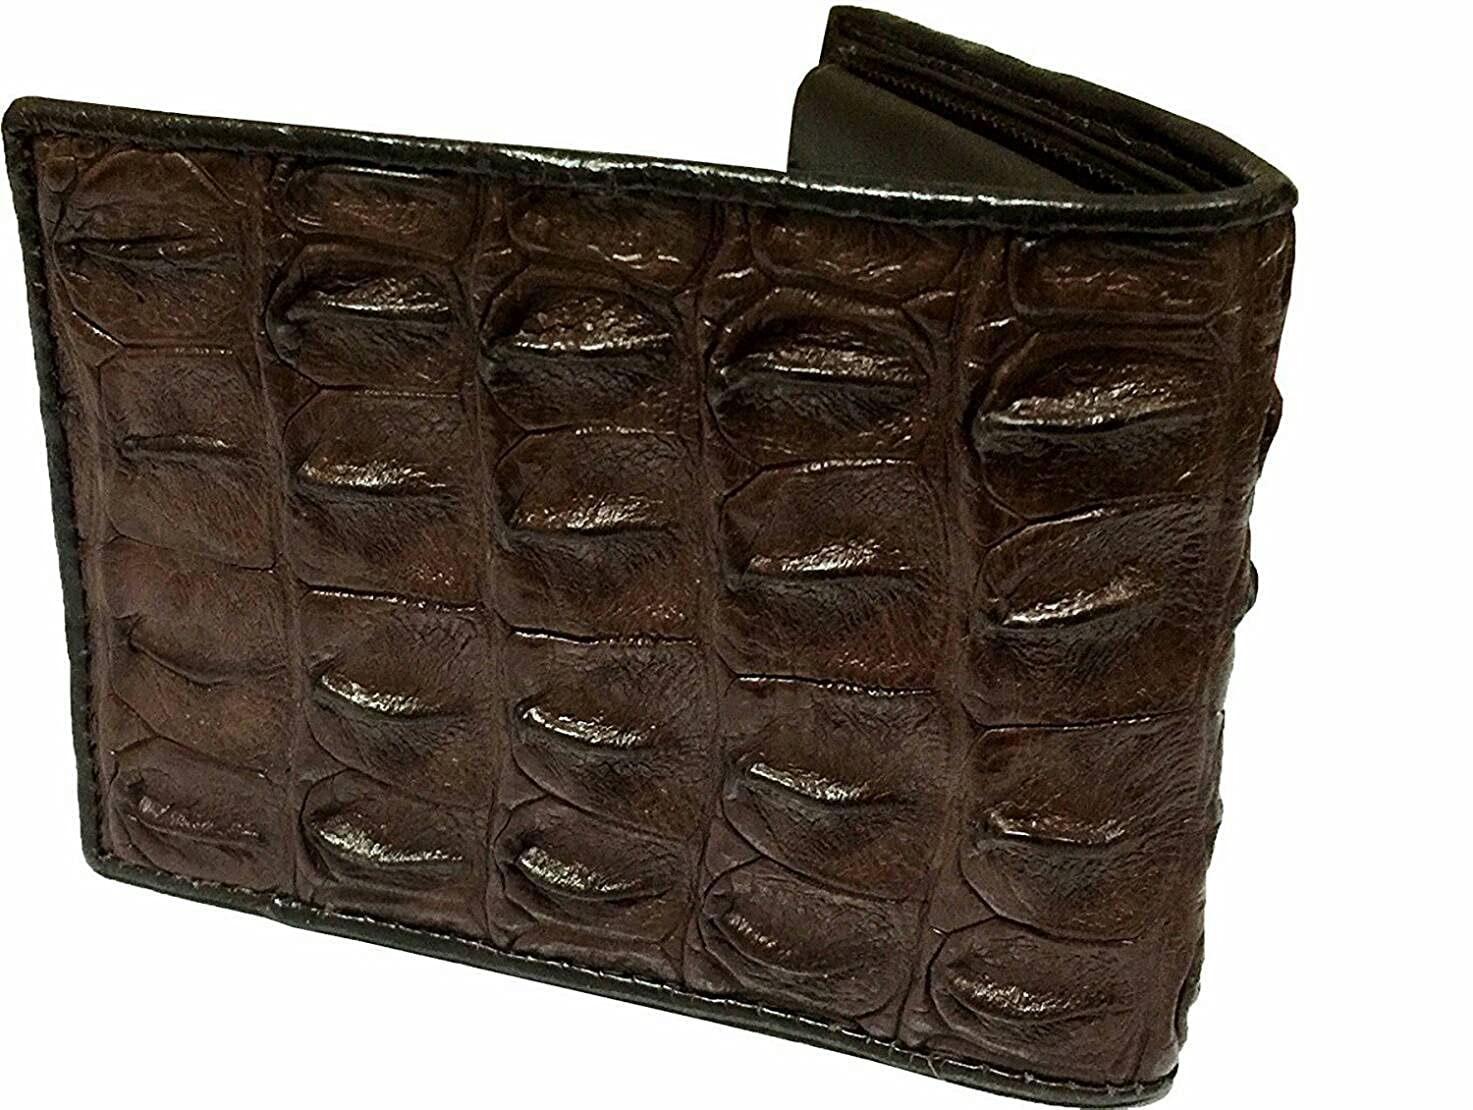 e5d8903b44c7 Authentic Crocodile Skin Men's Big backbone Bifold Shiny Dark Brown Wallet